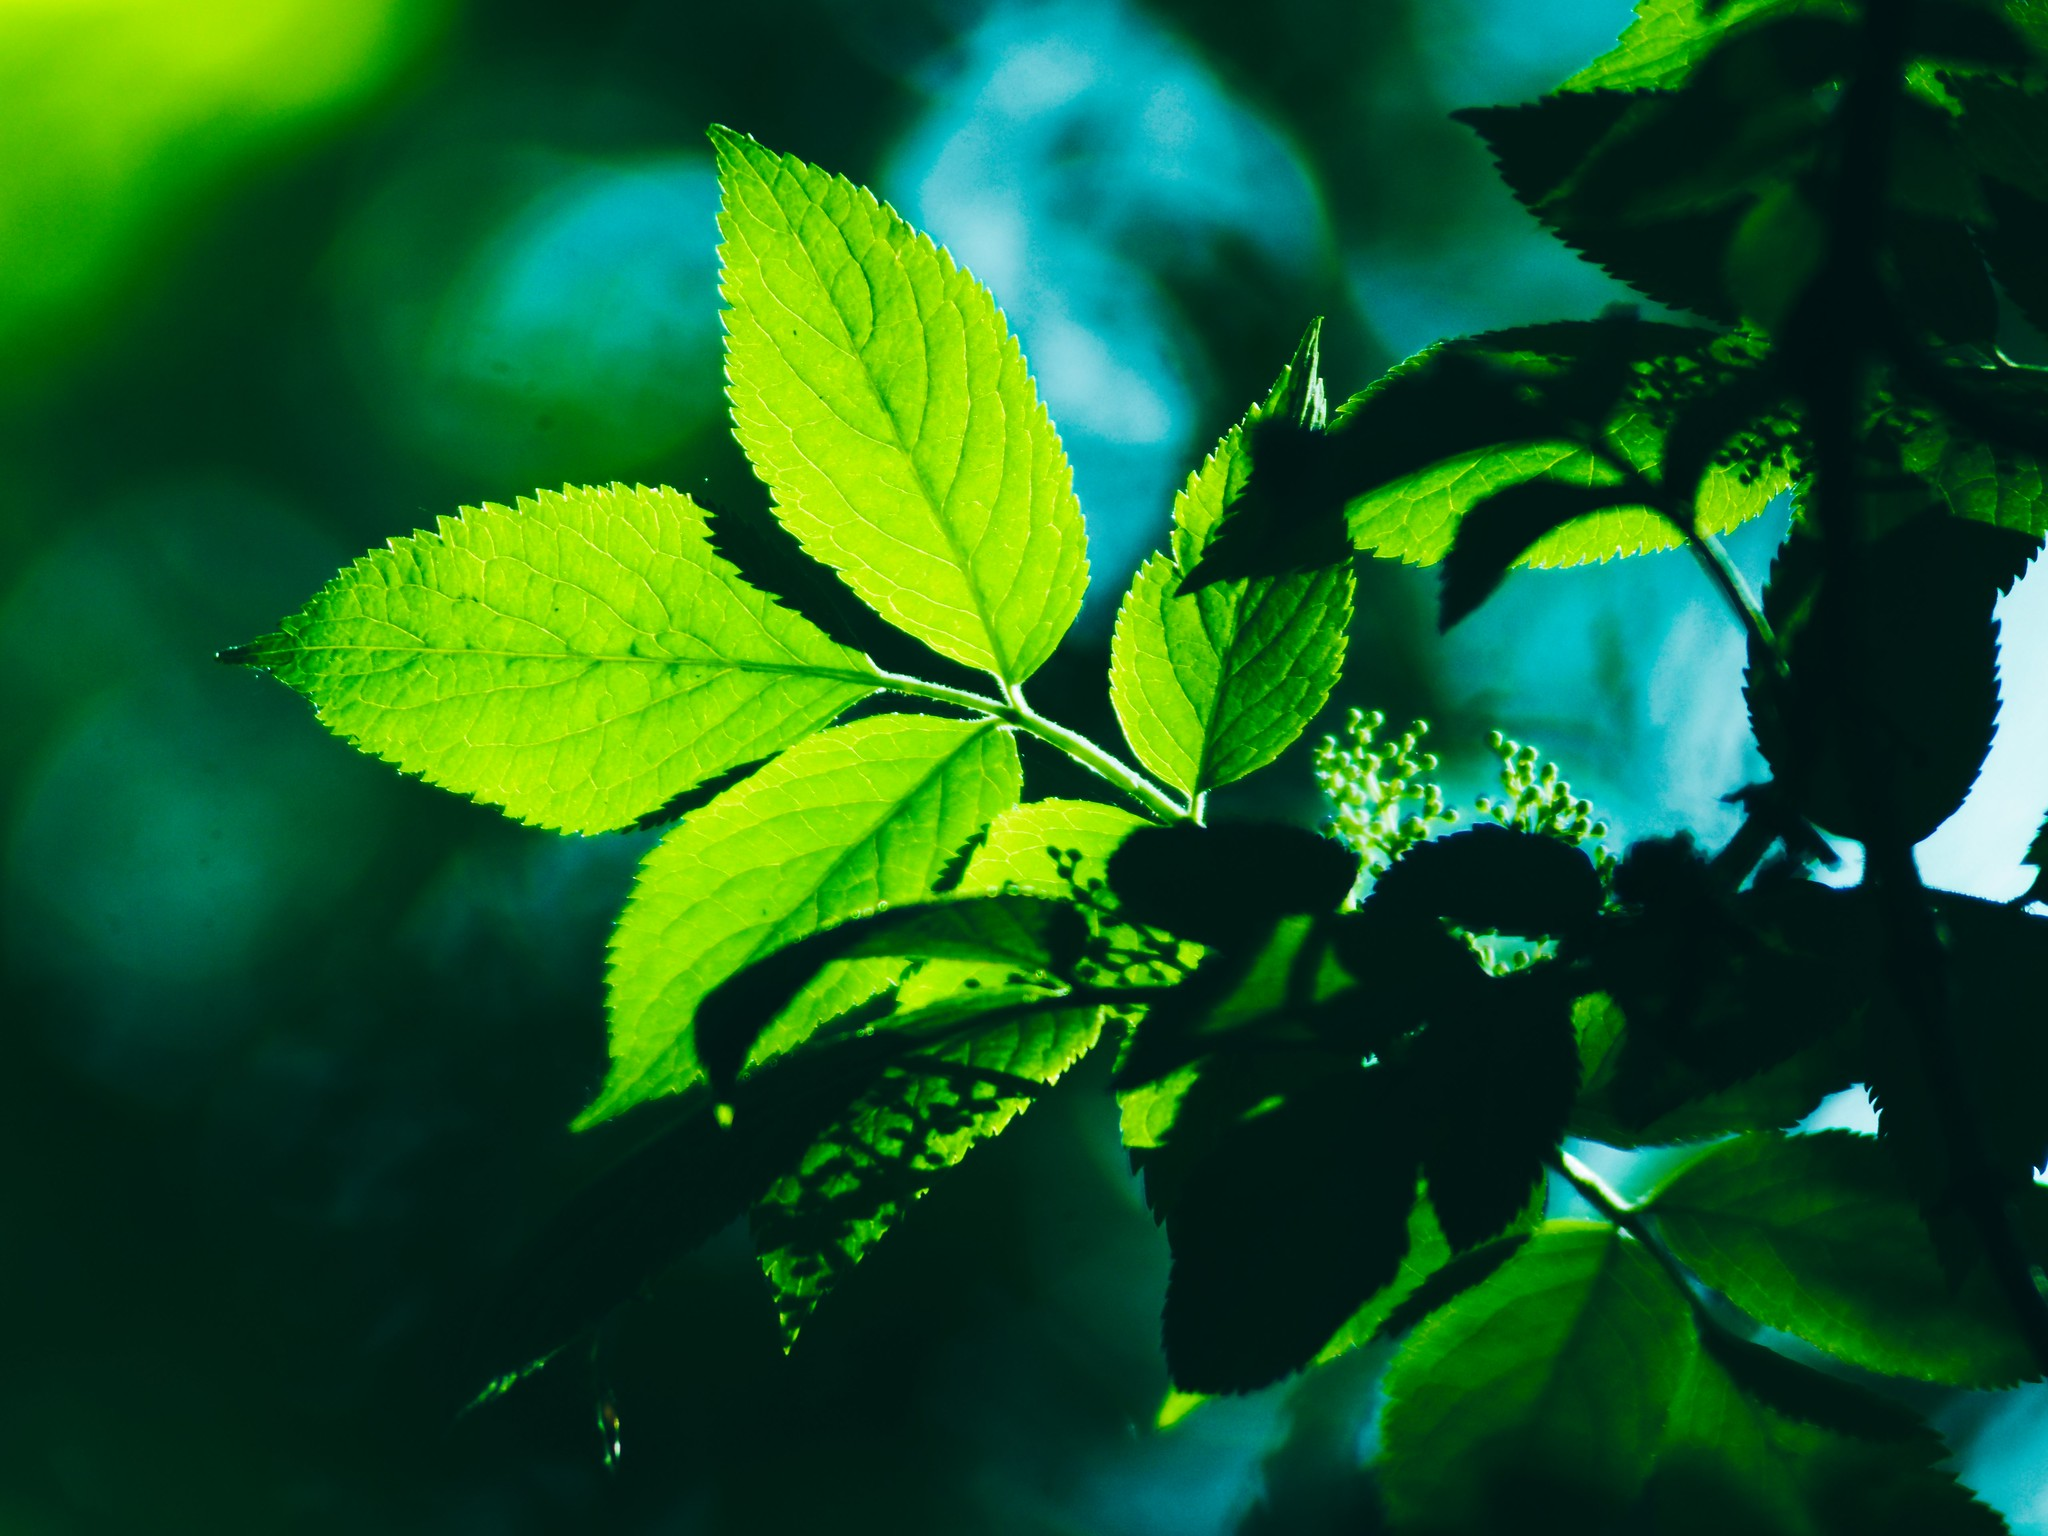 Green and light bokeh | May 31, 2020 | Schleswig-Holstein - Germany